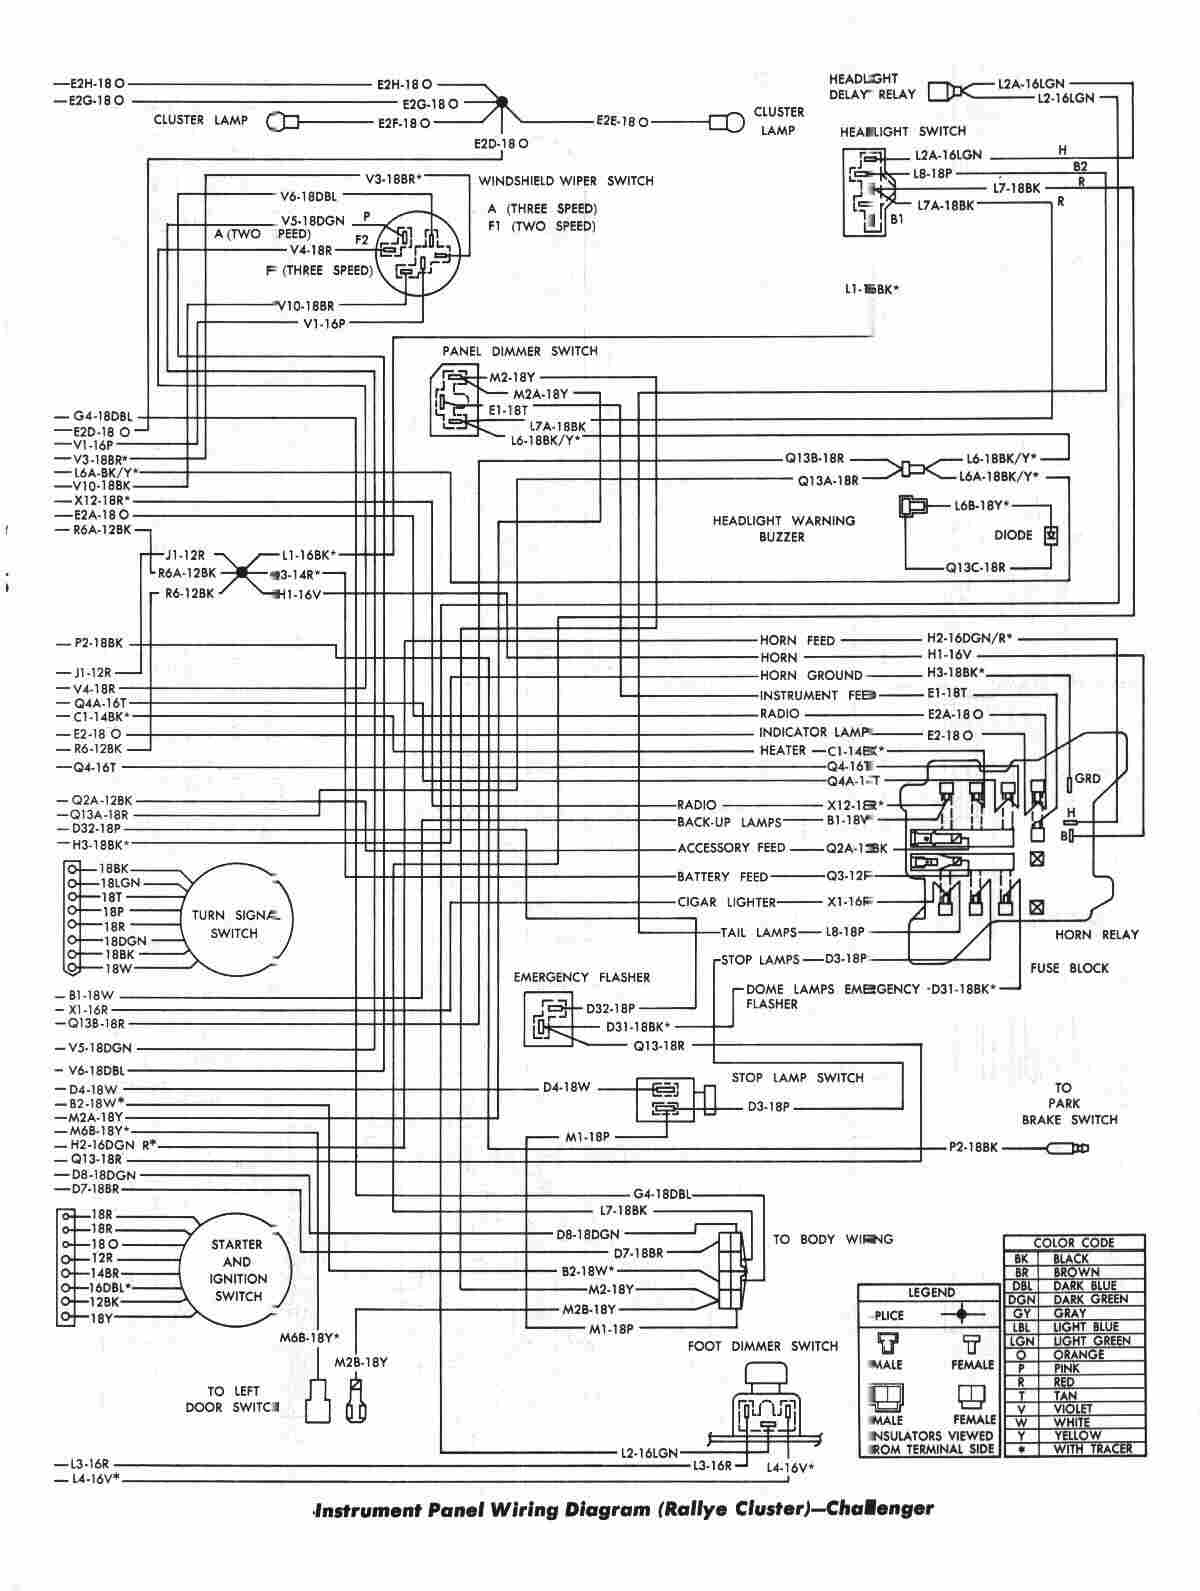 1970 Dodge Challenger Wiper Switch Wiring Example Electrical Instrument Panel Diagram Ford Motor